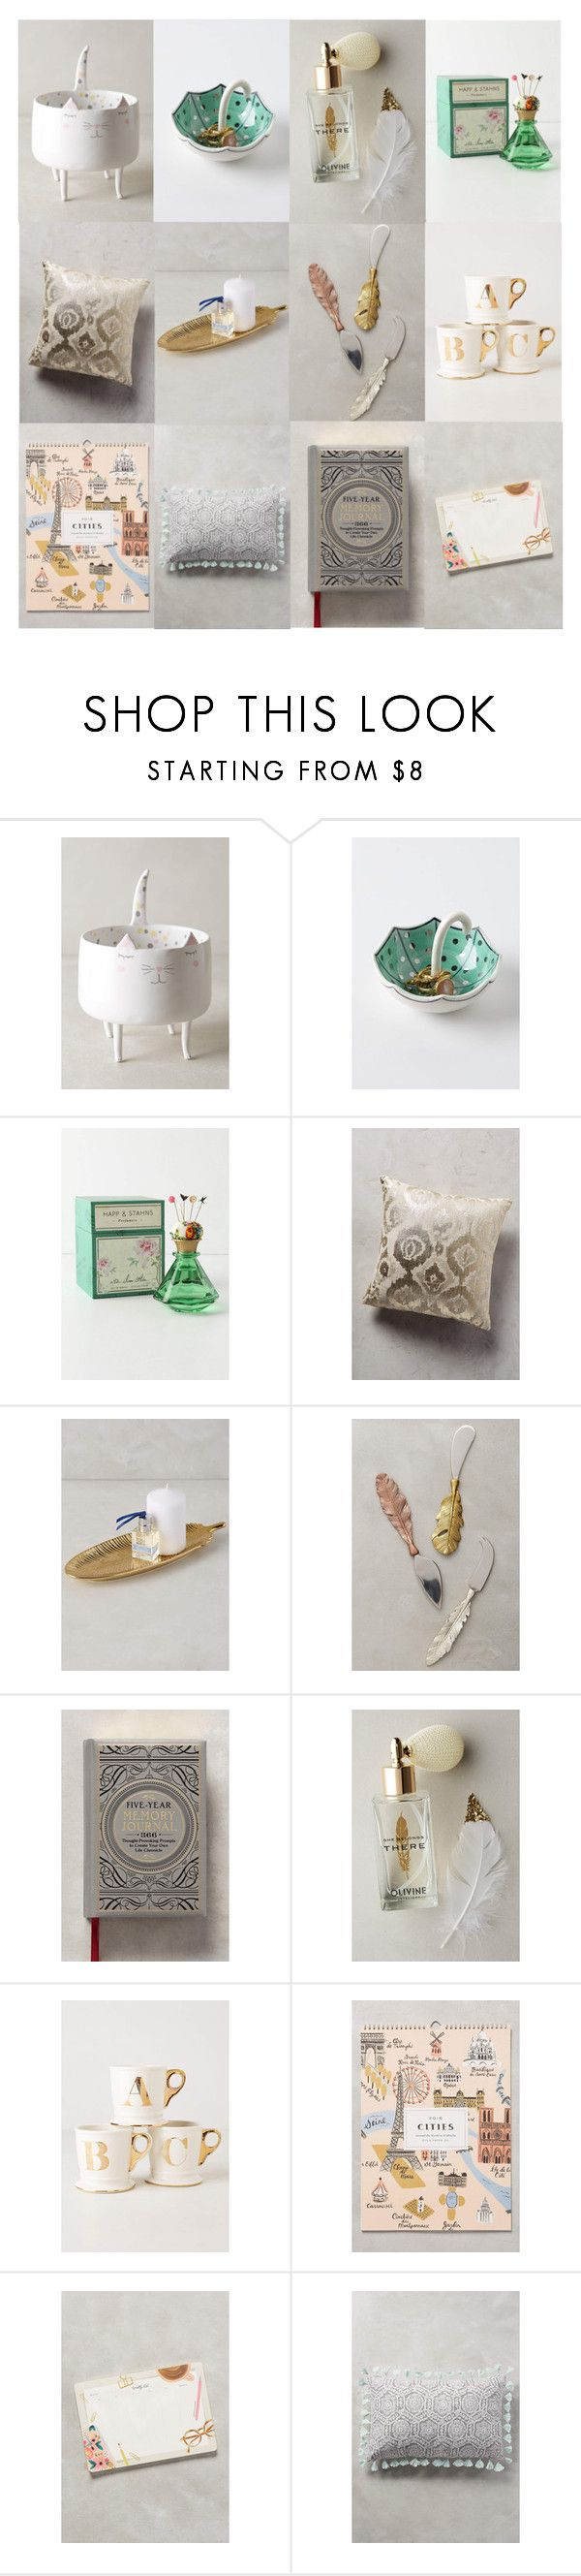 """""""Anthropology Wish List"""" by phillips-sally ❤ liked on Polyvore featuring interior, interiors, interior design, home, home decor, interior decorating, Marta Turowska, Molly Hatch, Maeve and Anthropologie"""